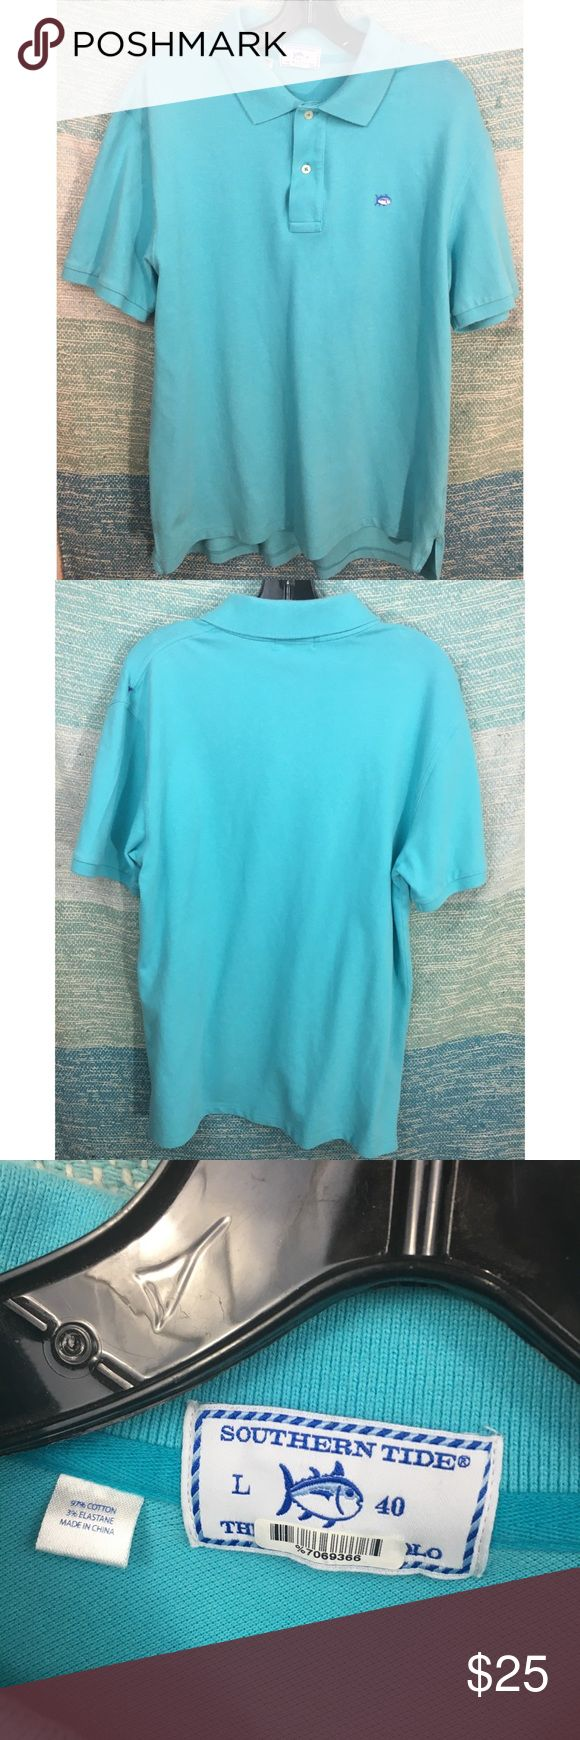 """Southern Tide Blue Skipjack Polo Dress Shirt Excellent used condition, without flaws.  Classic style, lightweight cotton Blend.   29"""" Long, 44"""" bust. Southern Tide Shirts Polos"""